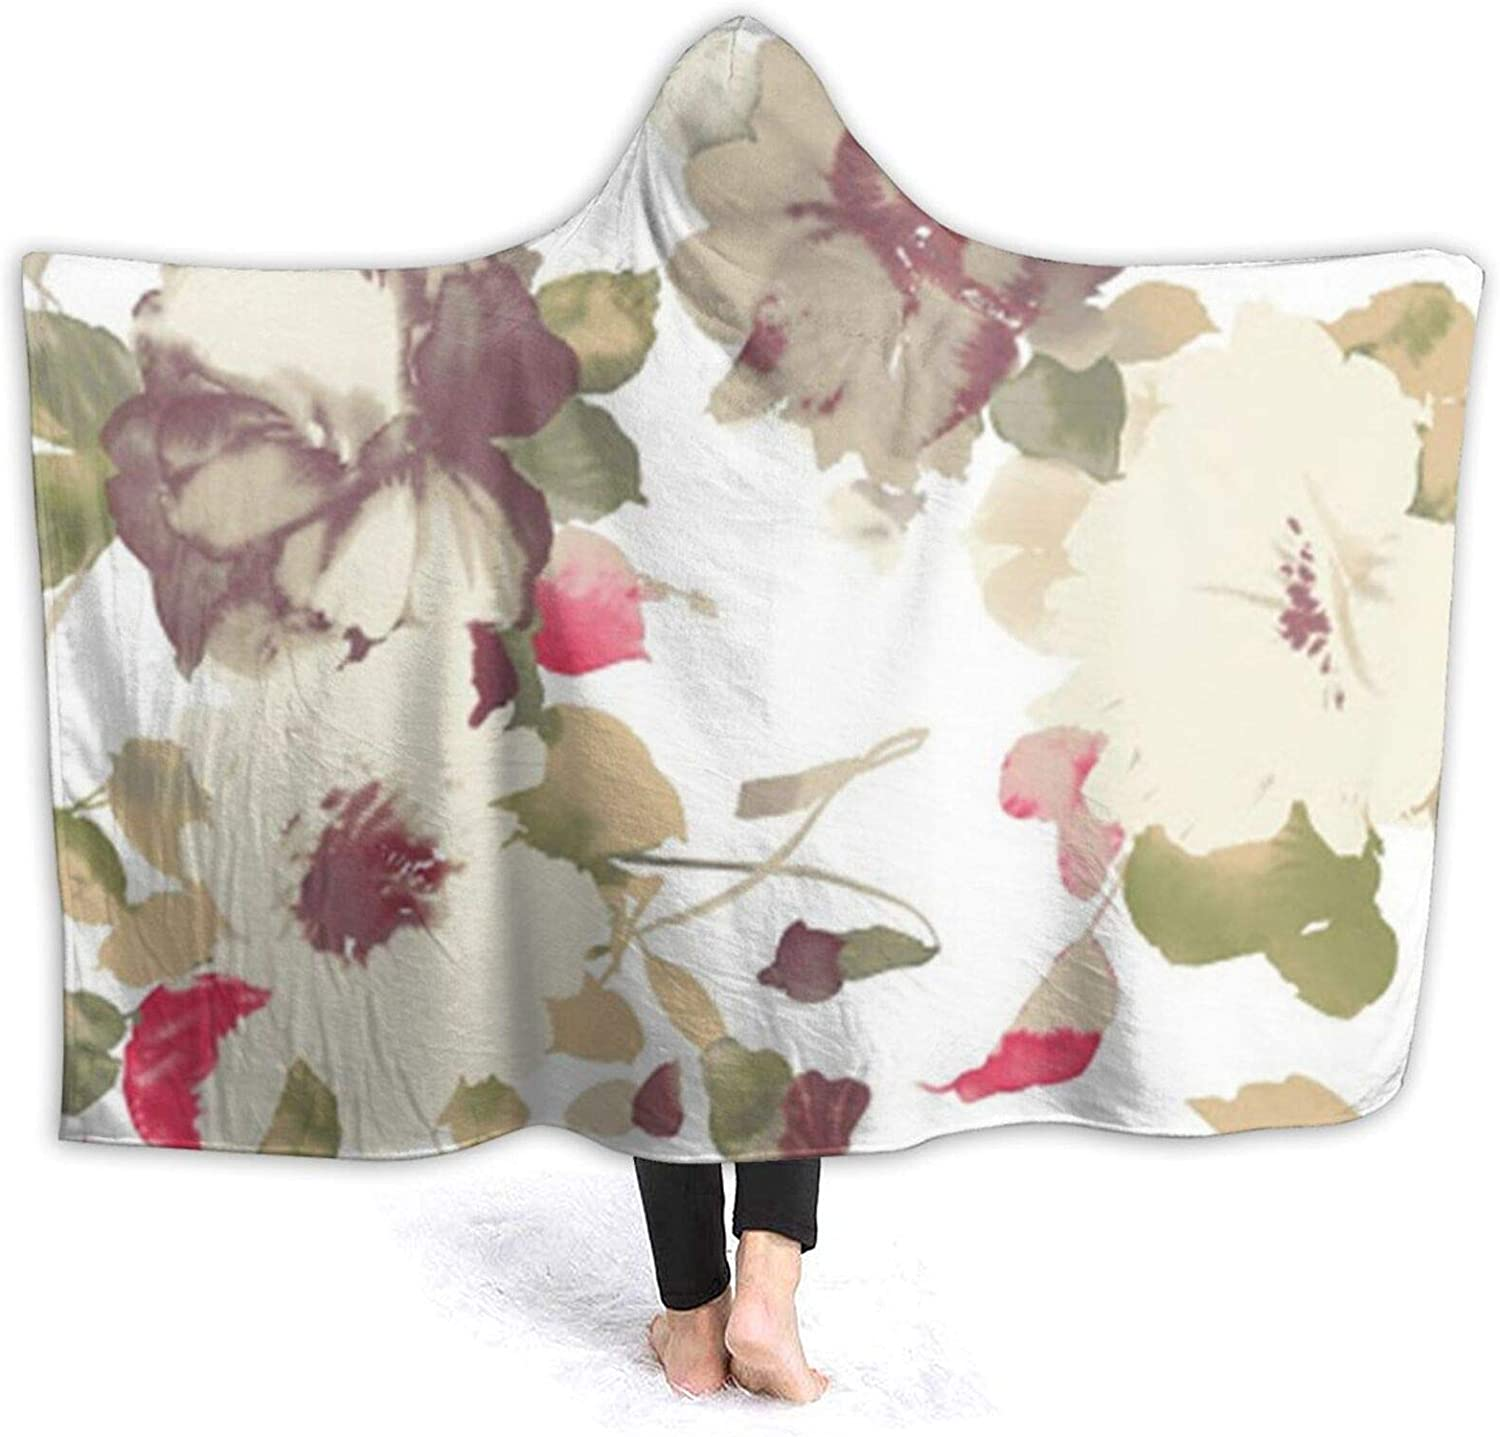 NSKJHYIp Flower Beige White Wearable Throw for Hooded New product Recommendation Super Soft